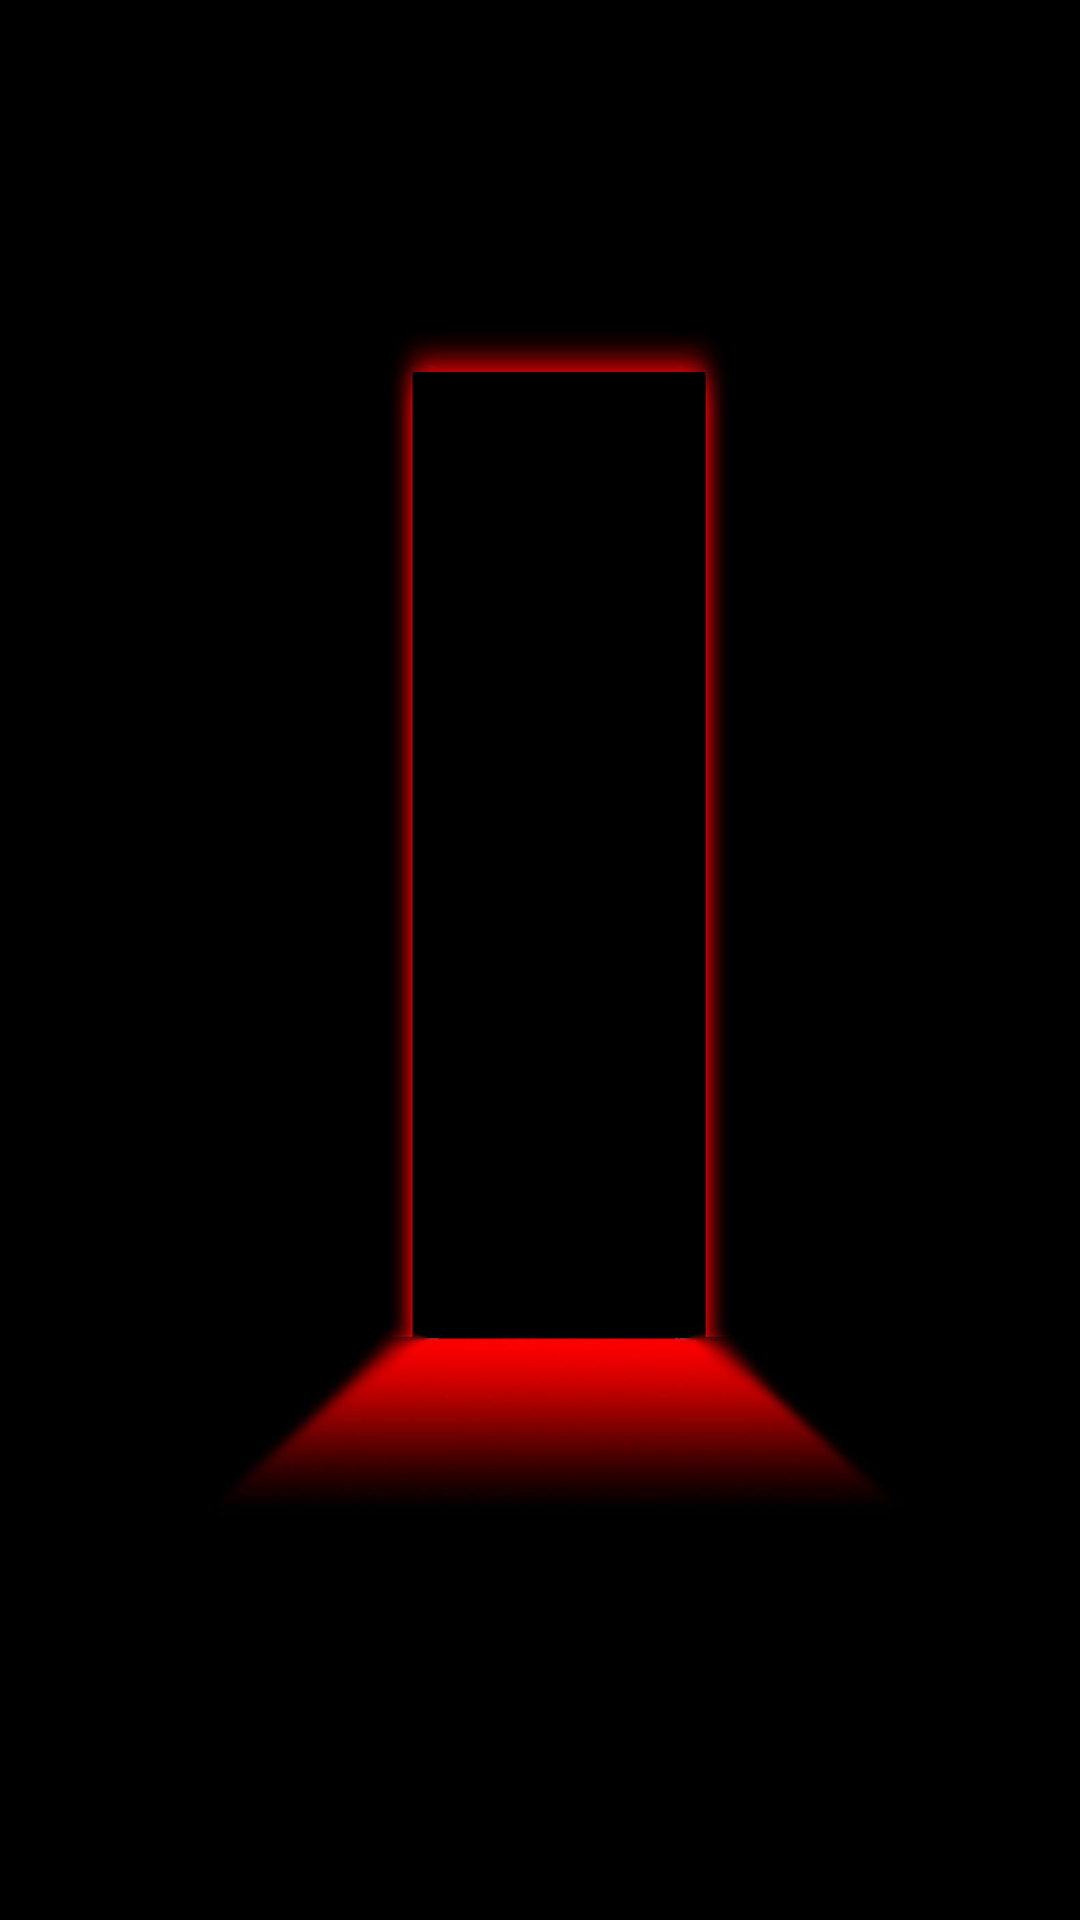 Wallpaperwiki 3d Black And Red Line Iphone 5s Hd Wallpapers Free